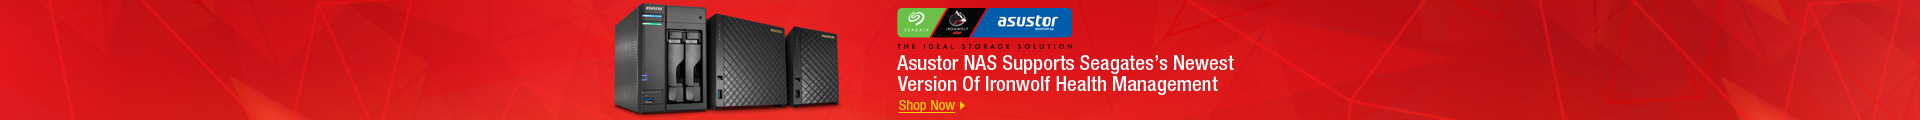 Asustor NAS Supports Seagates's Newest Version Of Ironwolf Health Management